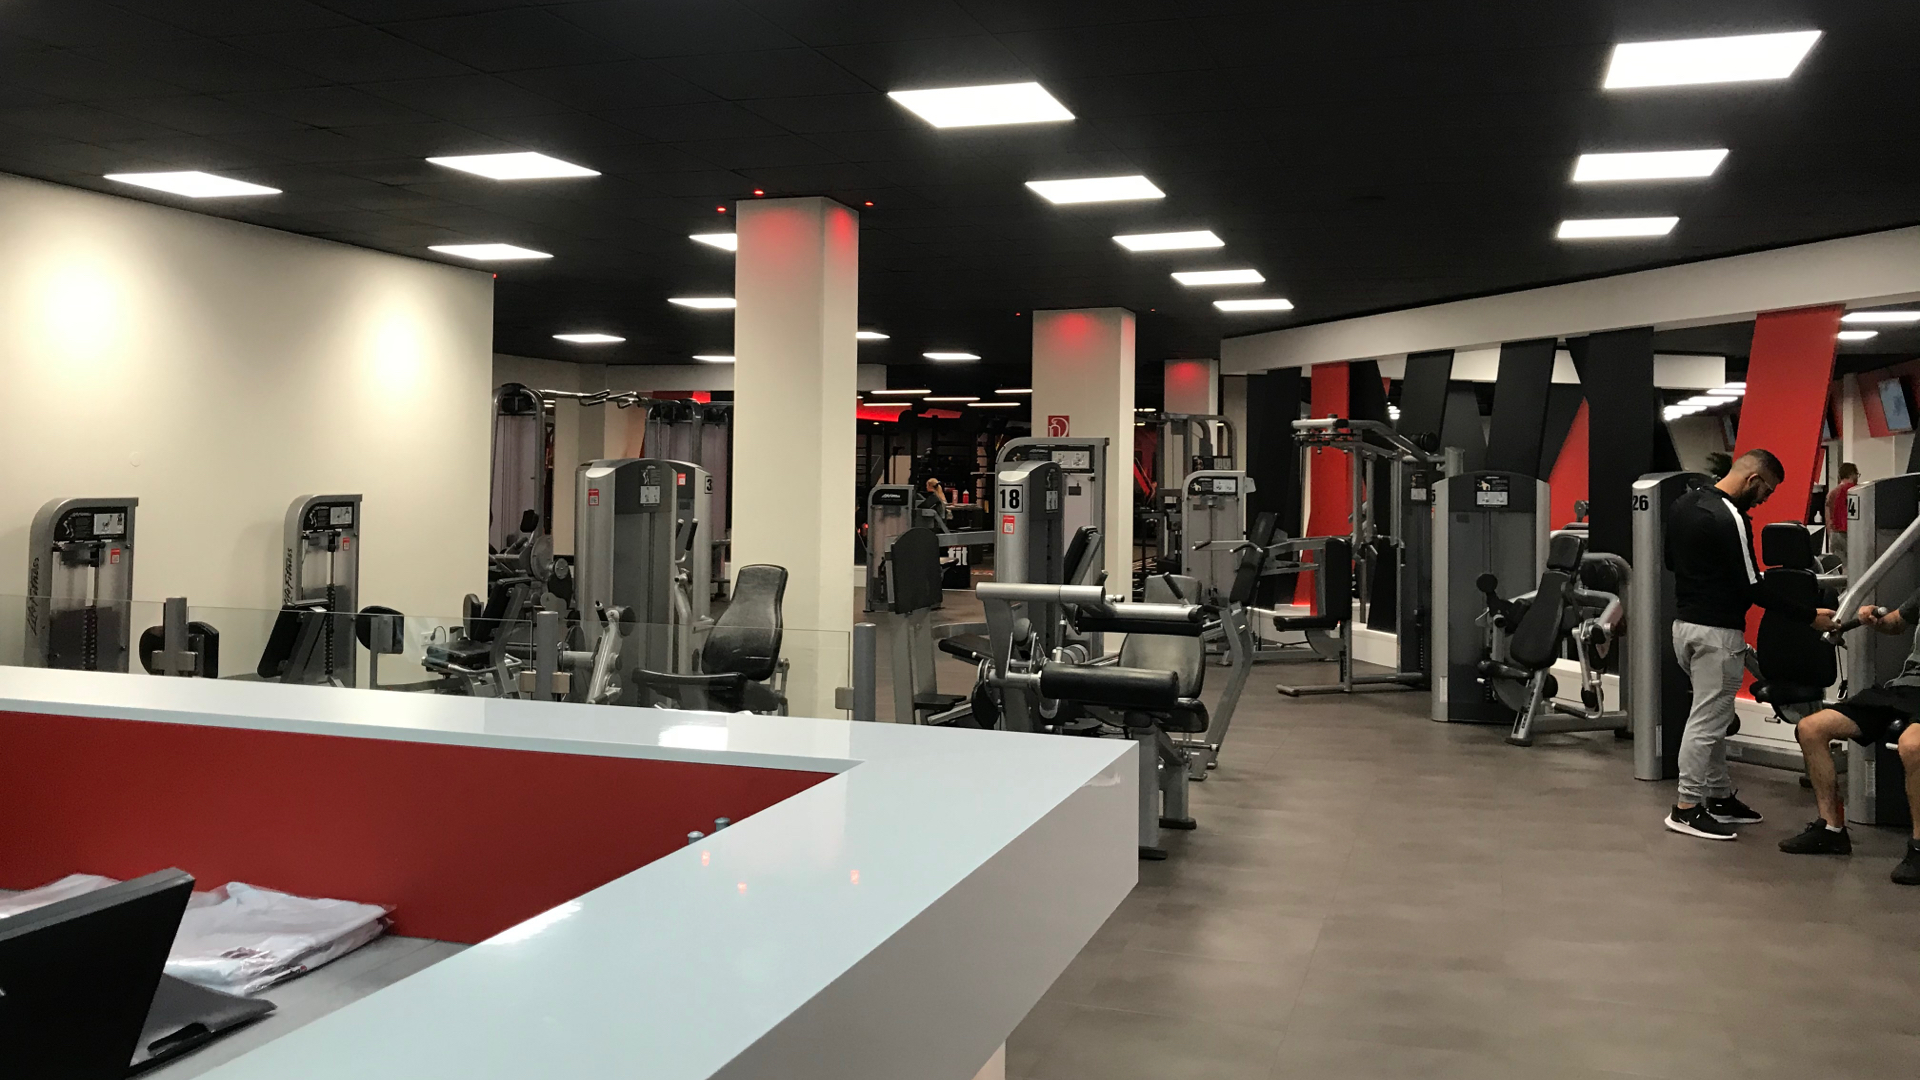 Cleverfit: A Loxone-automated gym